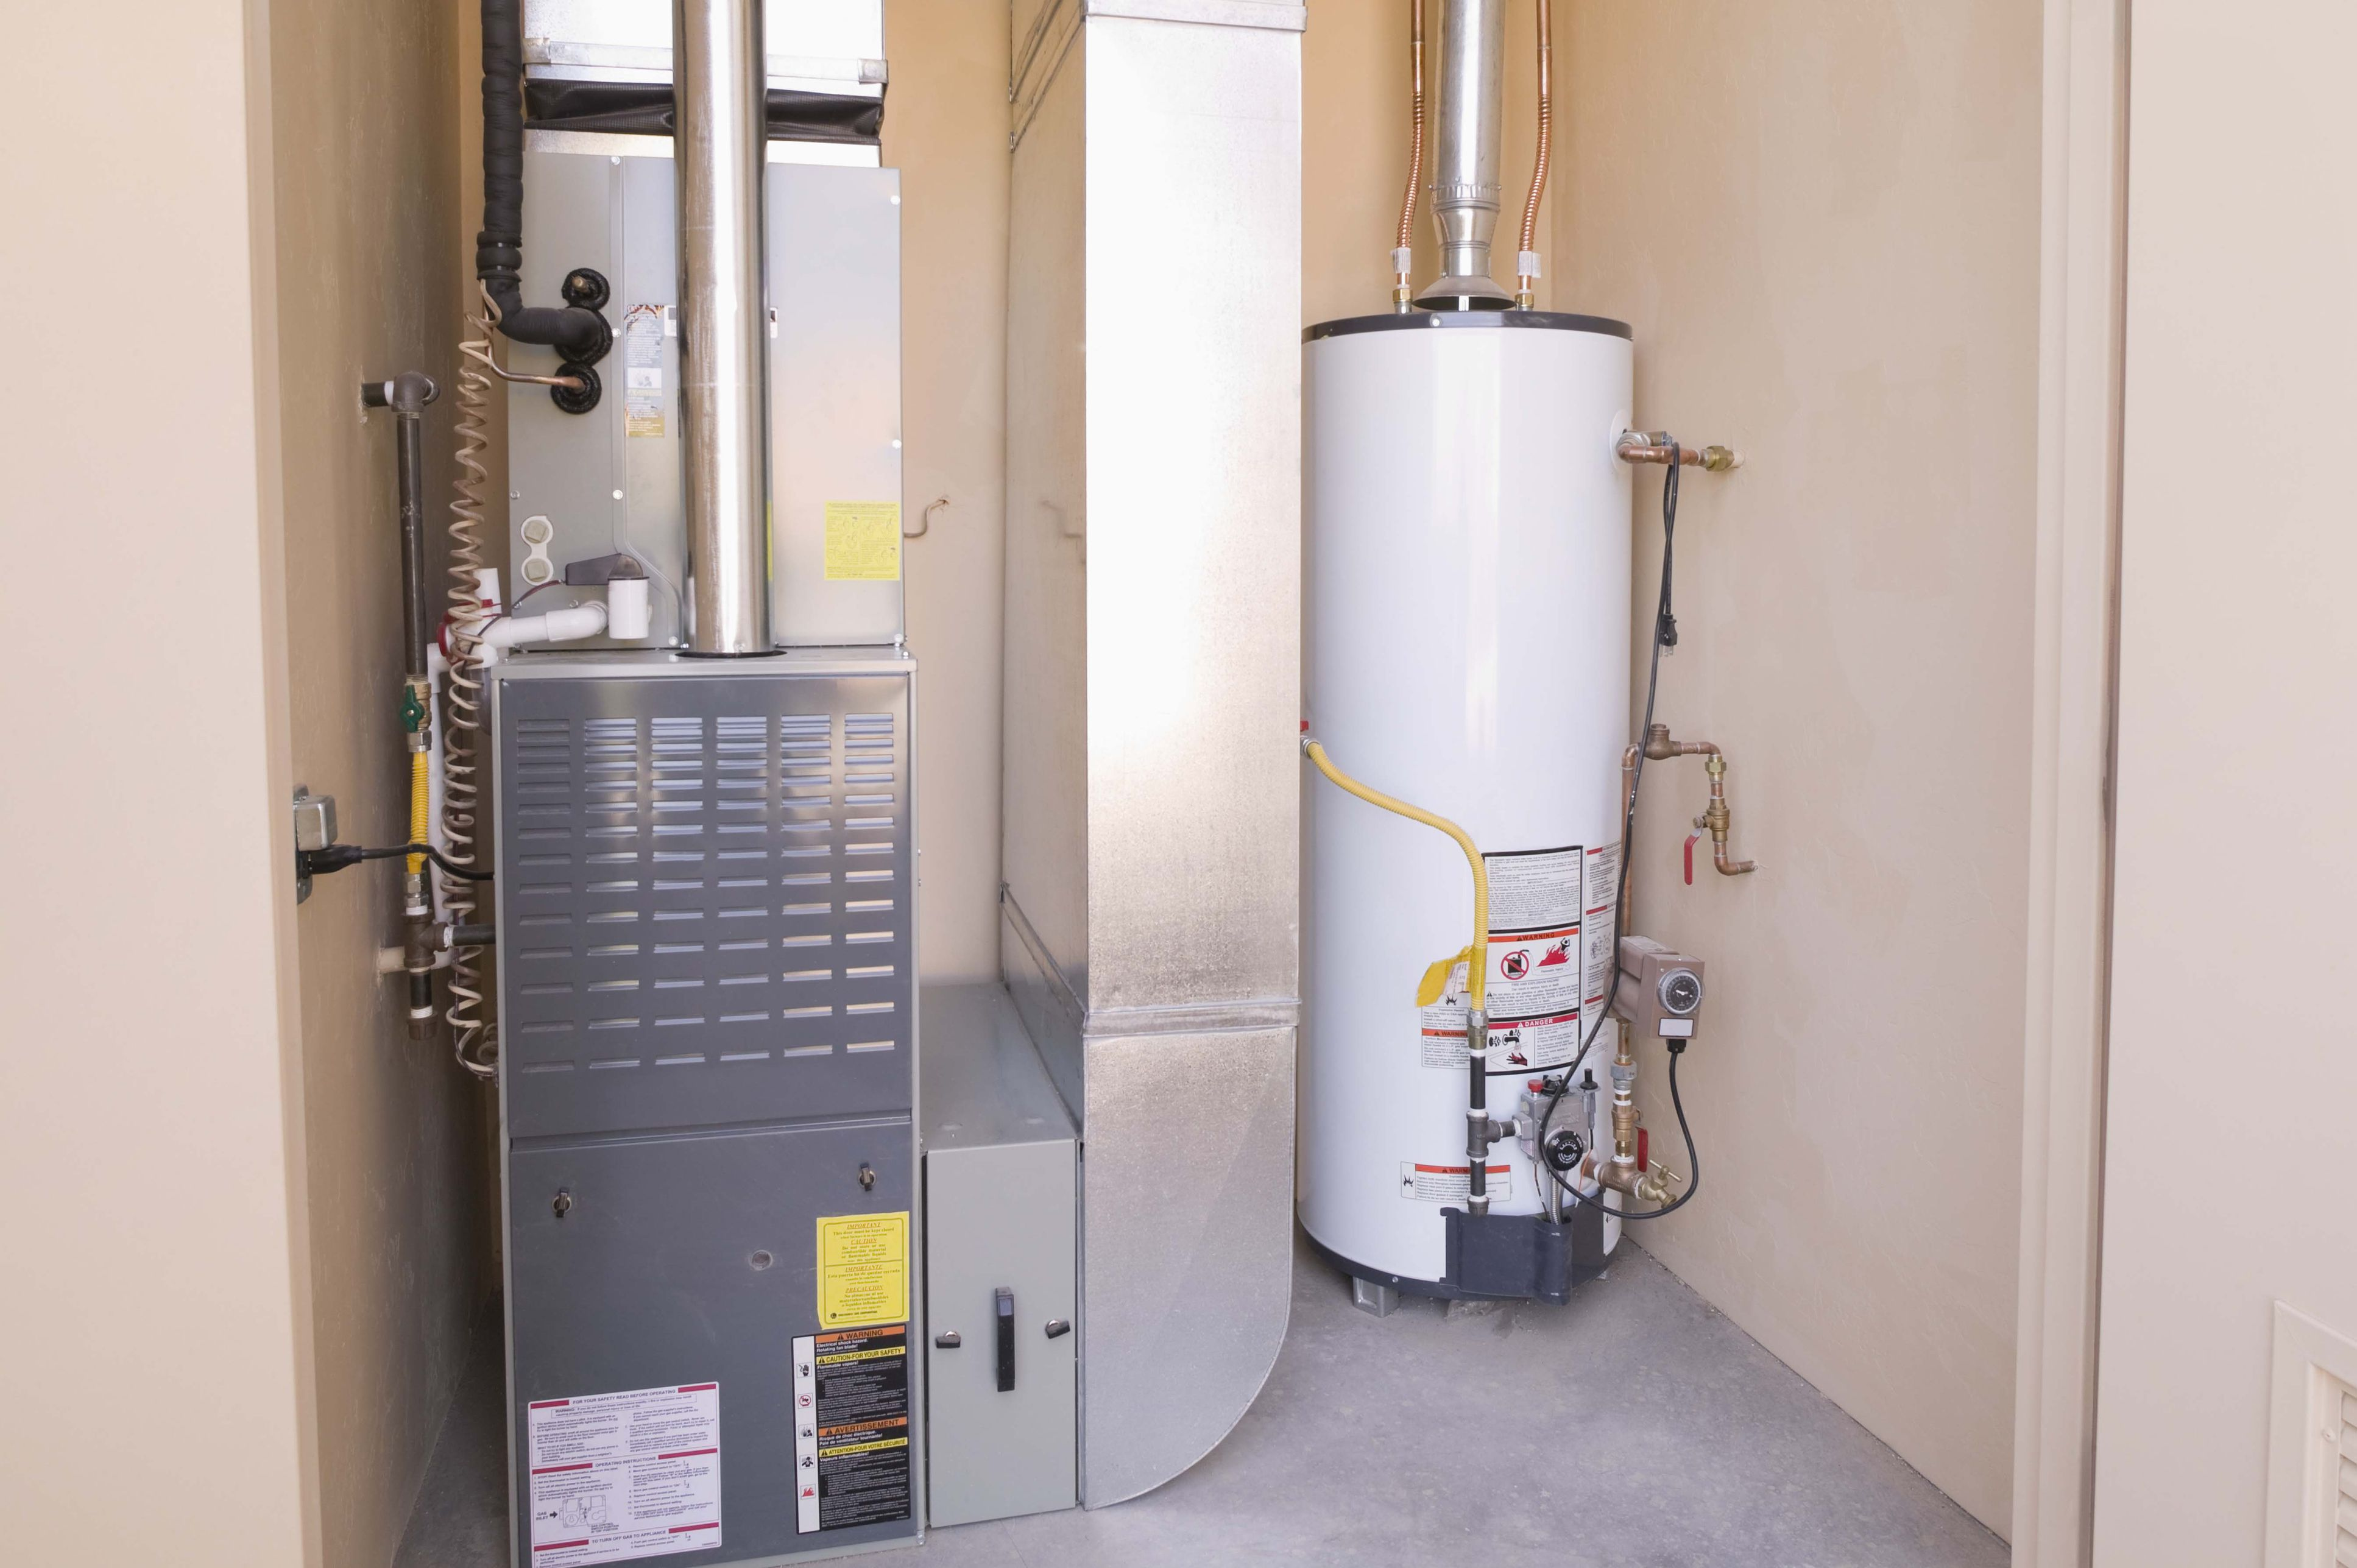 hot water heater and furnace in basement 580f79c75f9b ce0a260